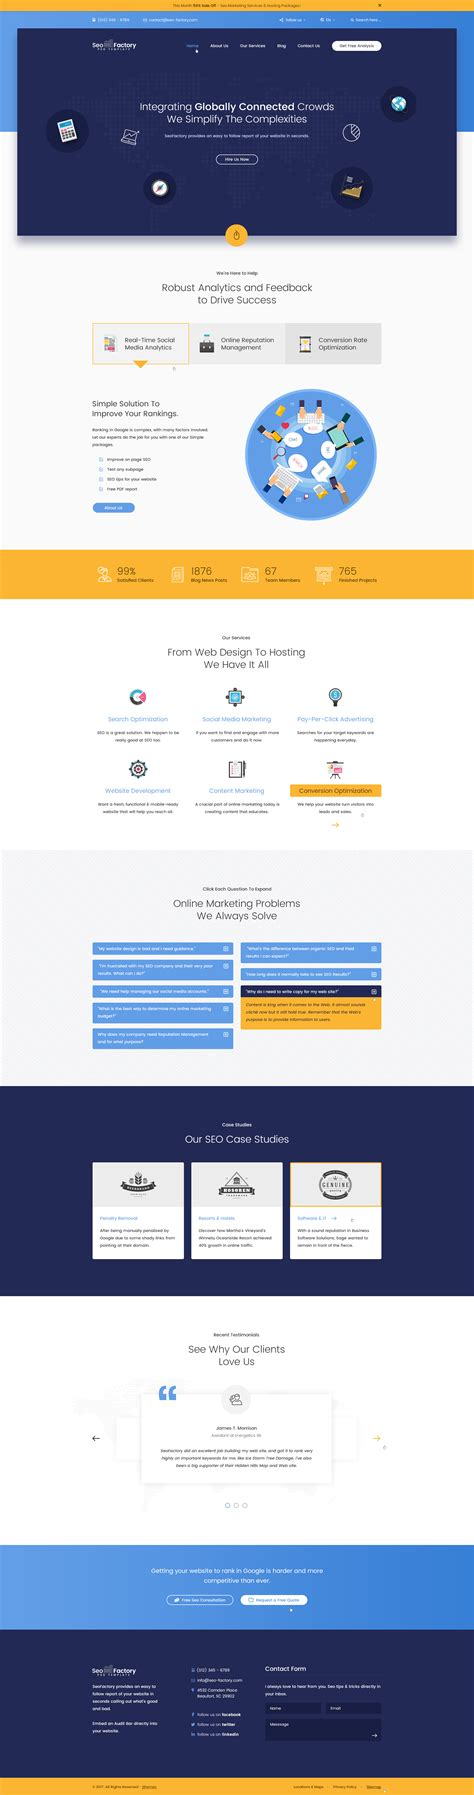 digital marketing agency template seo factory seo agency social media agency digital